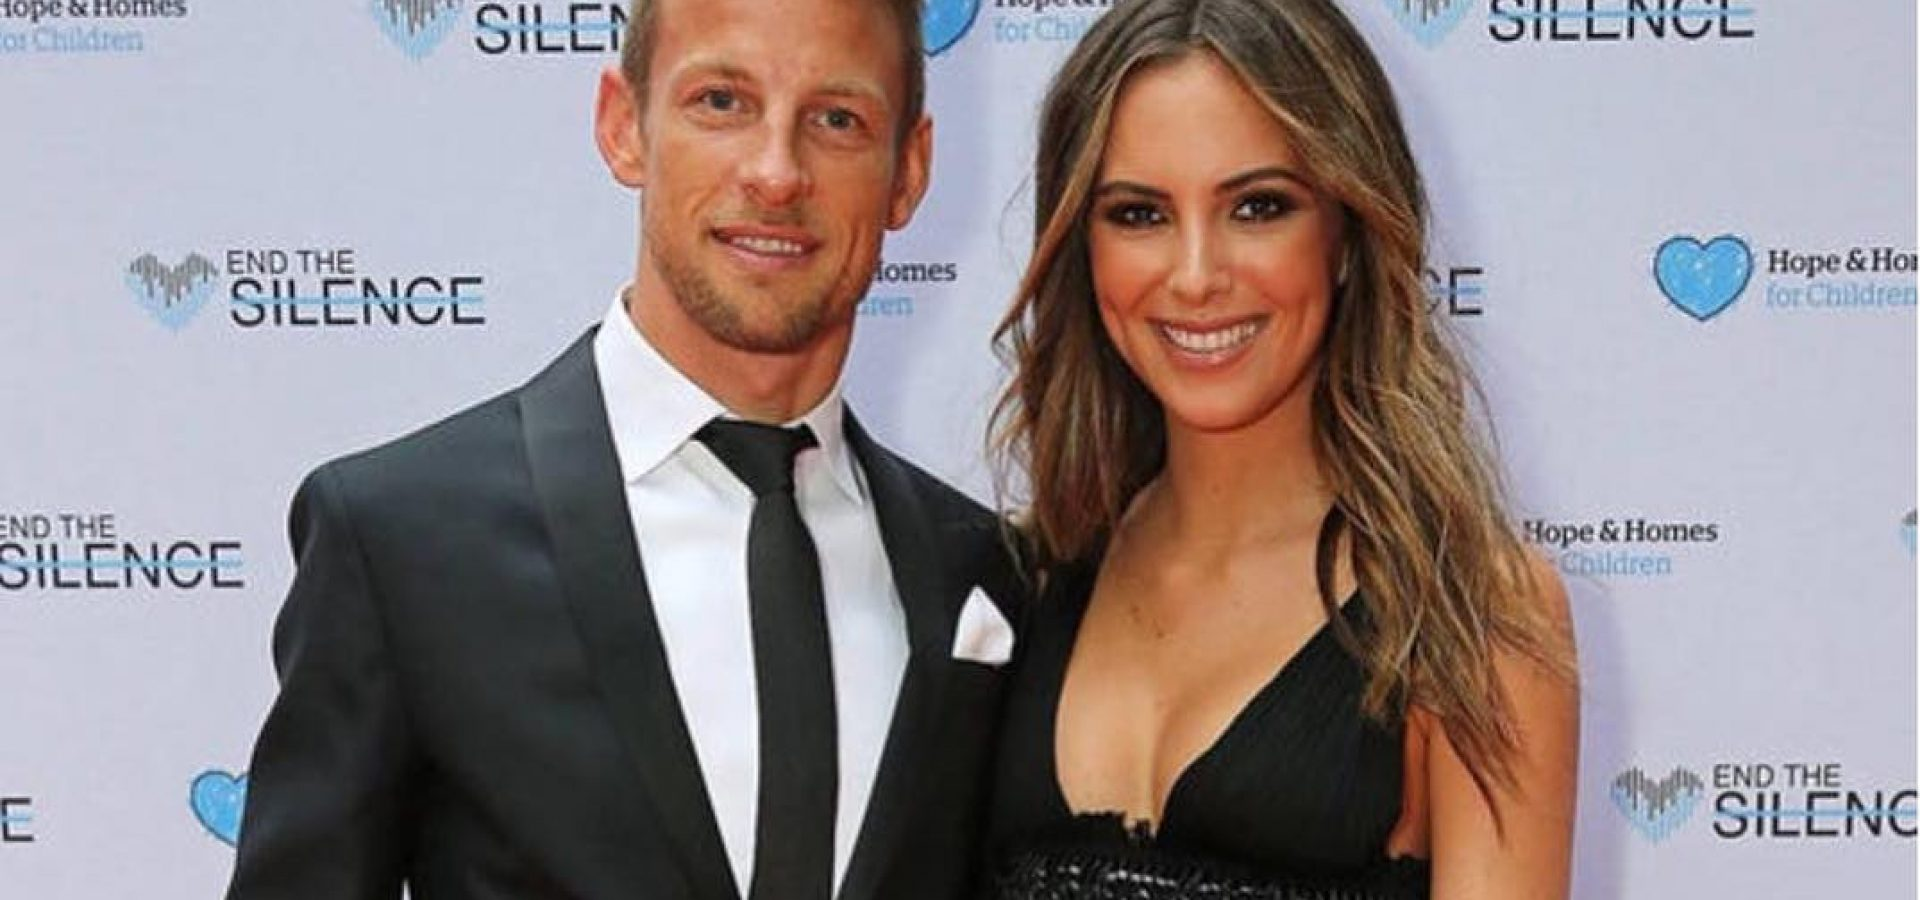 Jenson Button and his girlfriend Brittney Ward